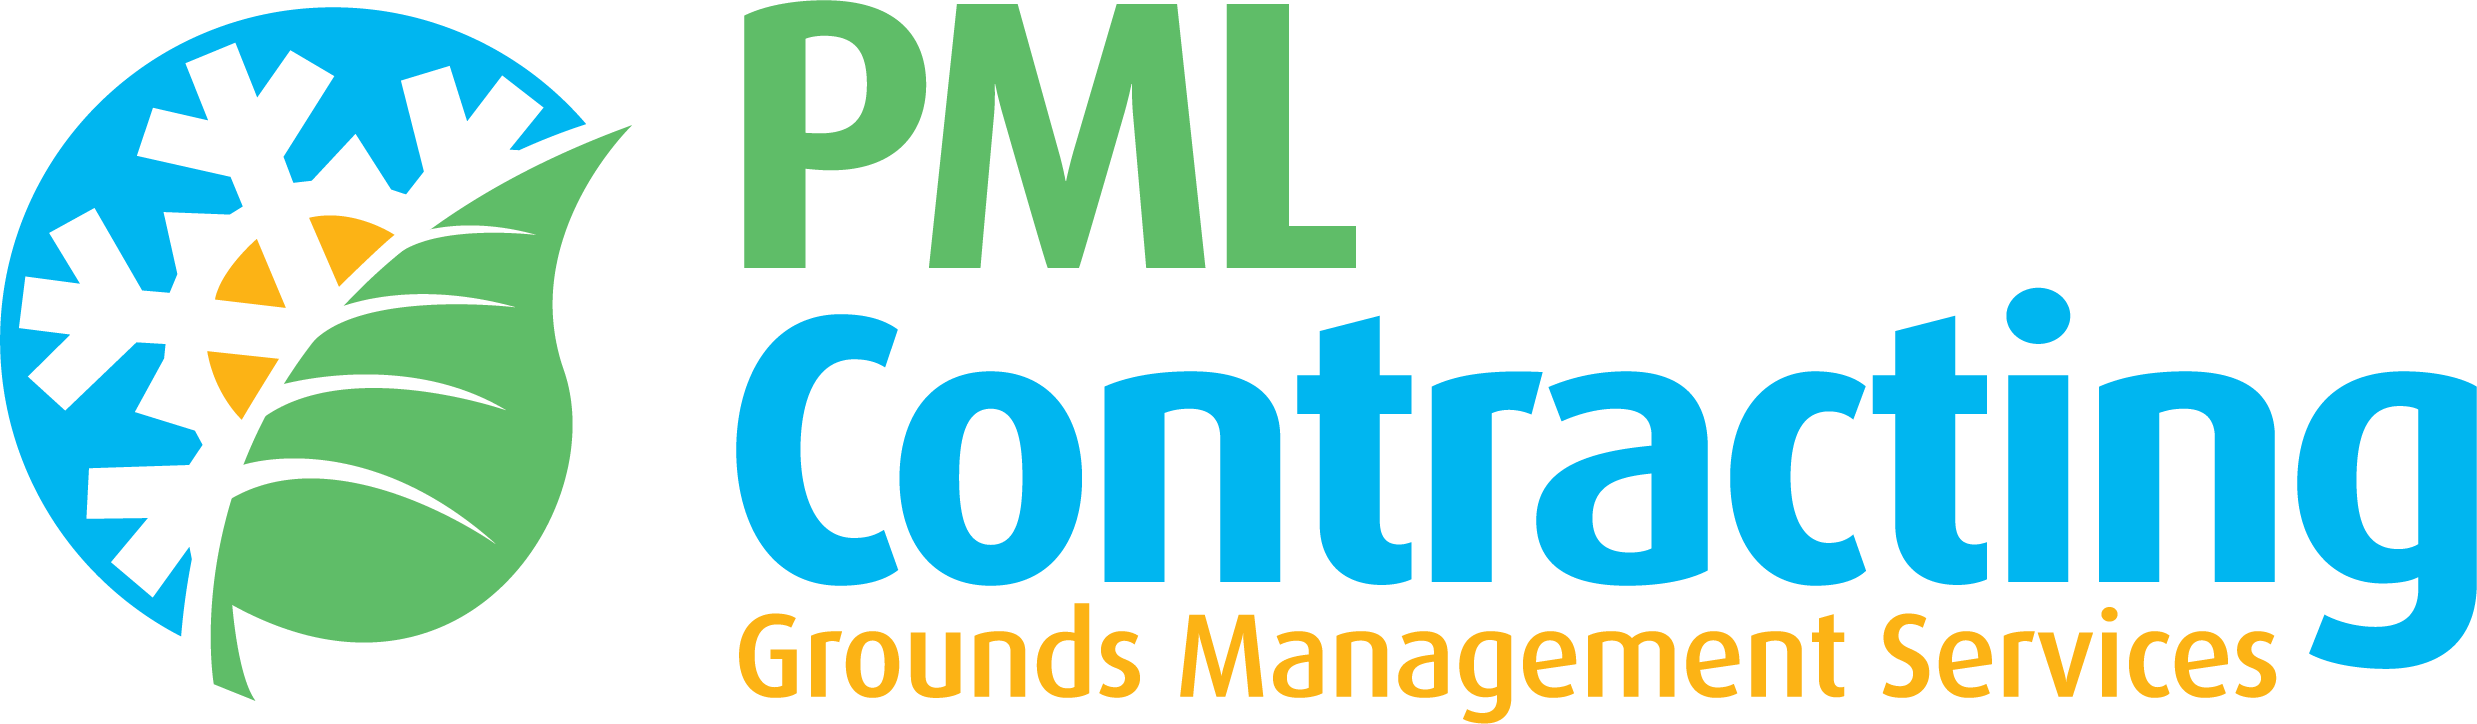 PML Contracting | Grounds Management Services in Ottawa, ON